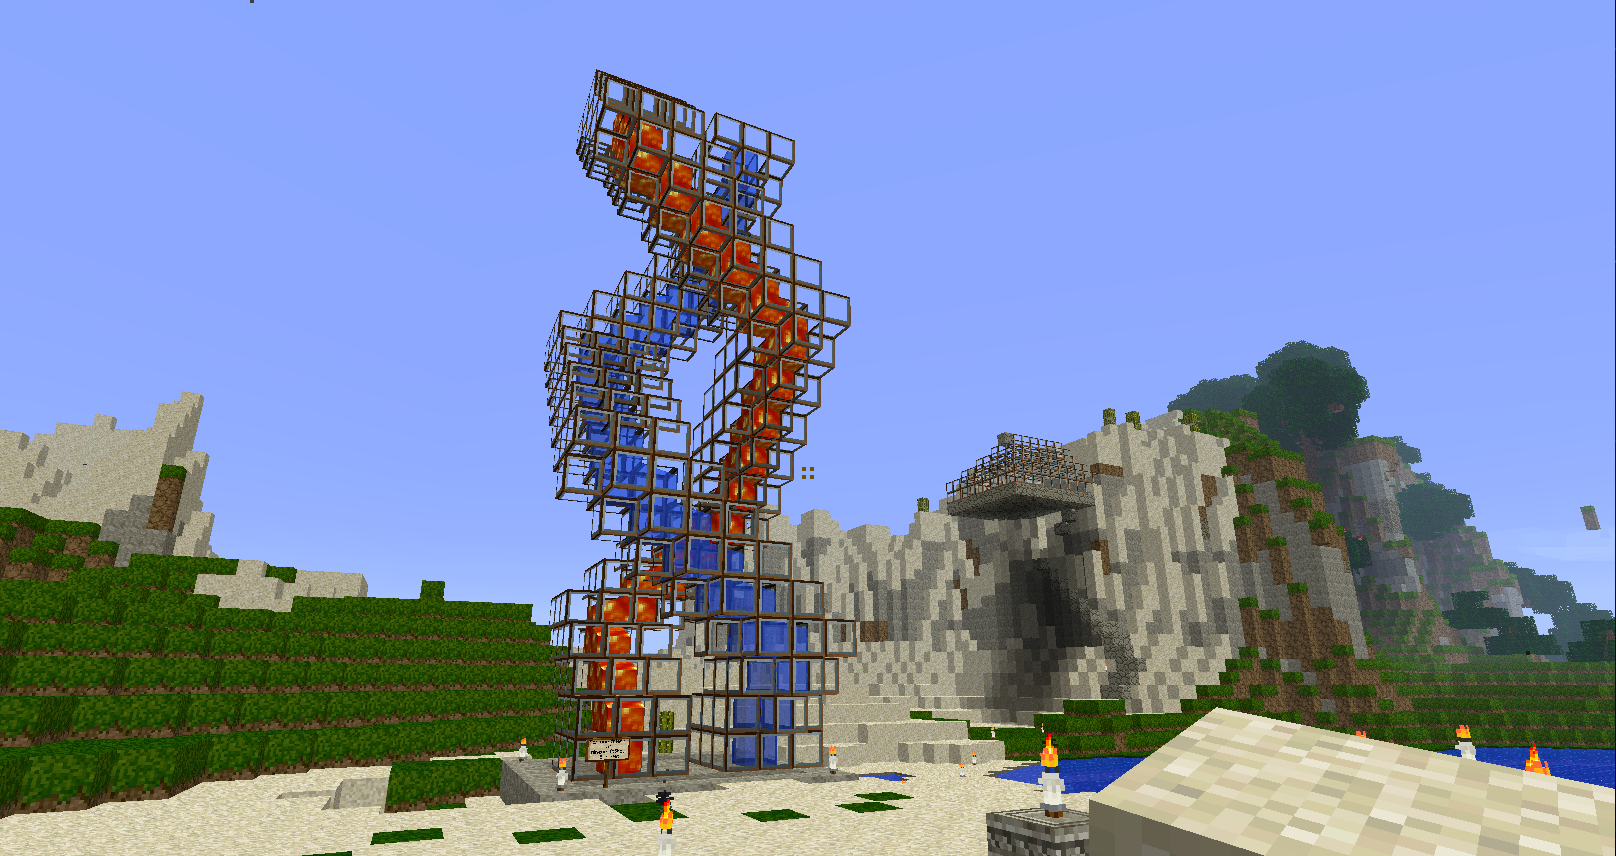 Some weird cool water and lava thing!  Cool things to build